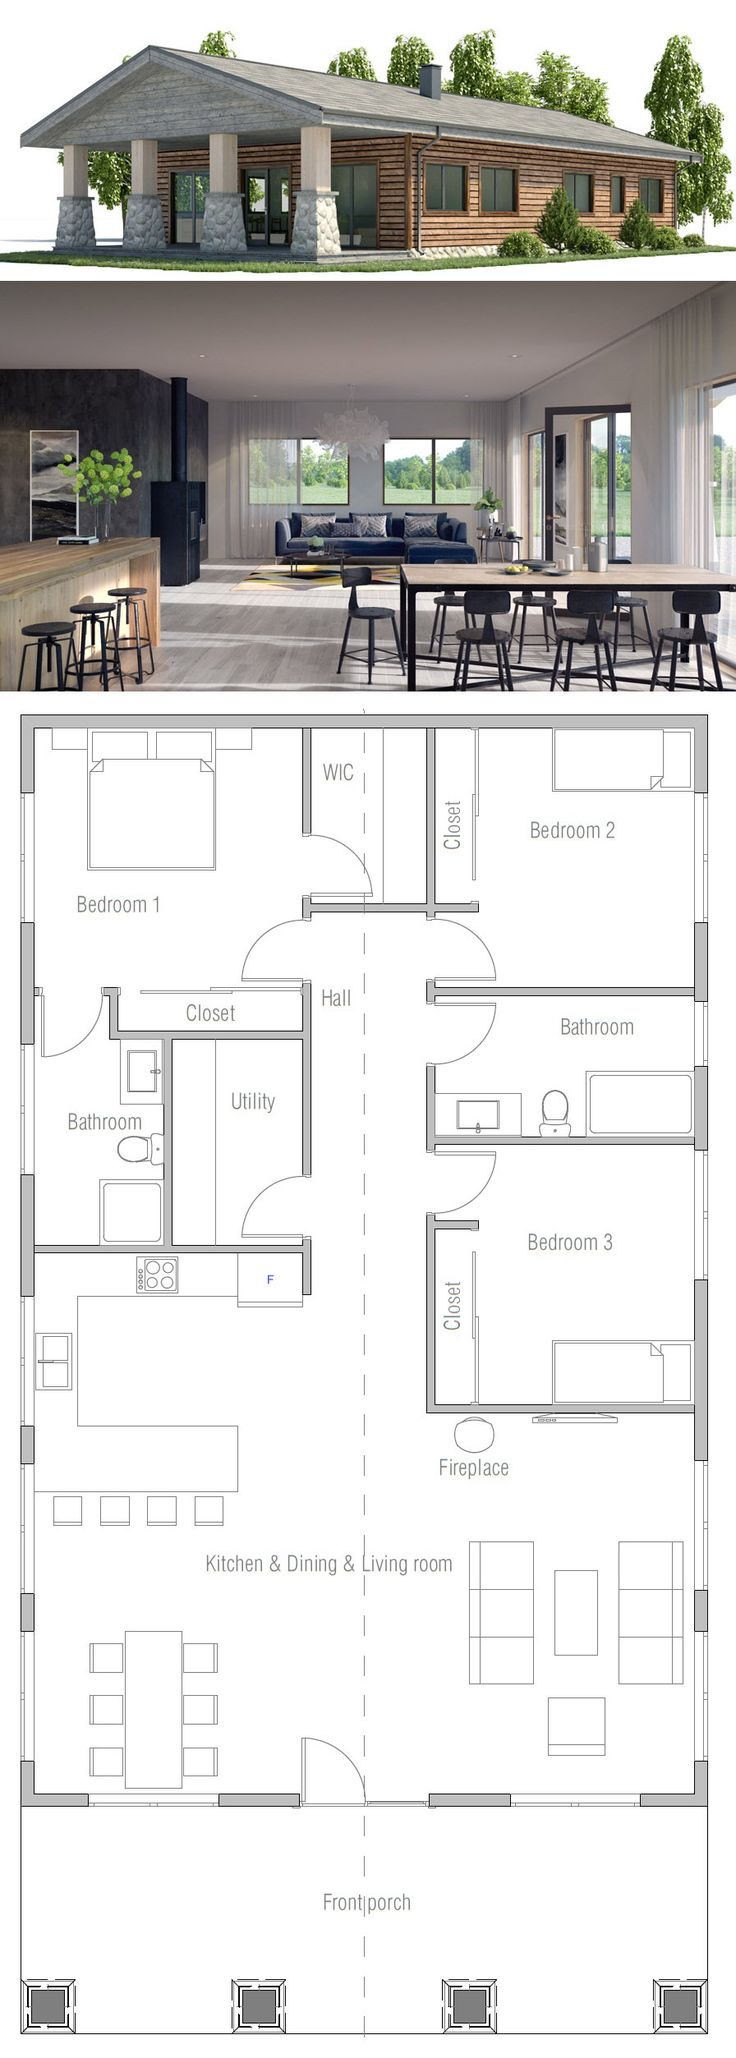 Home Plan, House Plan, New Home Plans, #homeplans #houseplans #architecture #floorplans